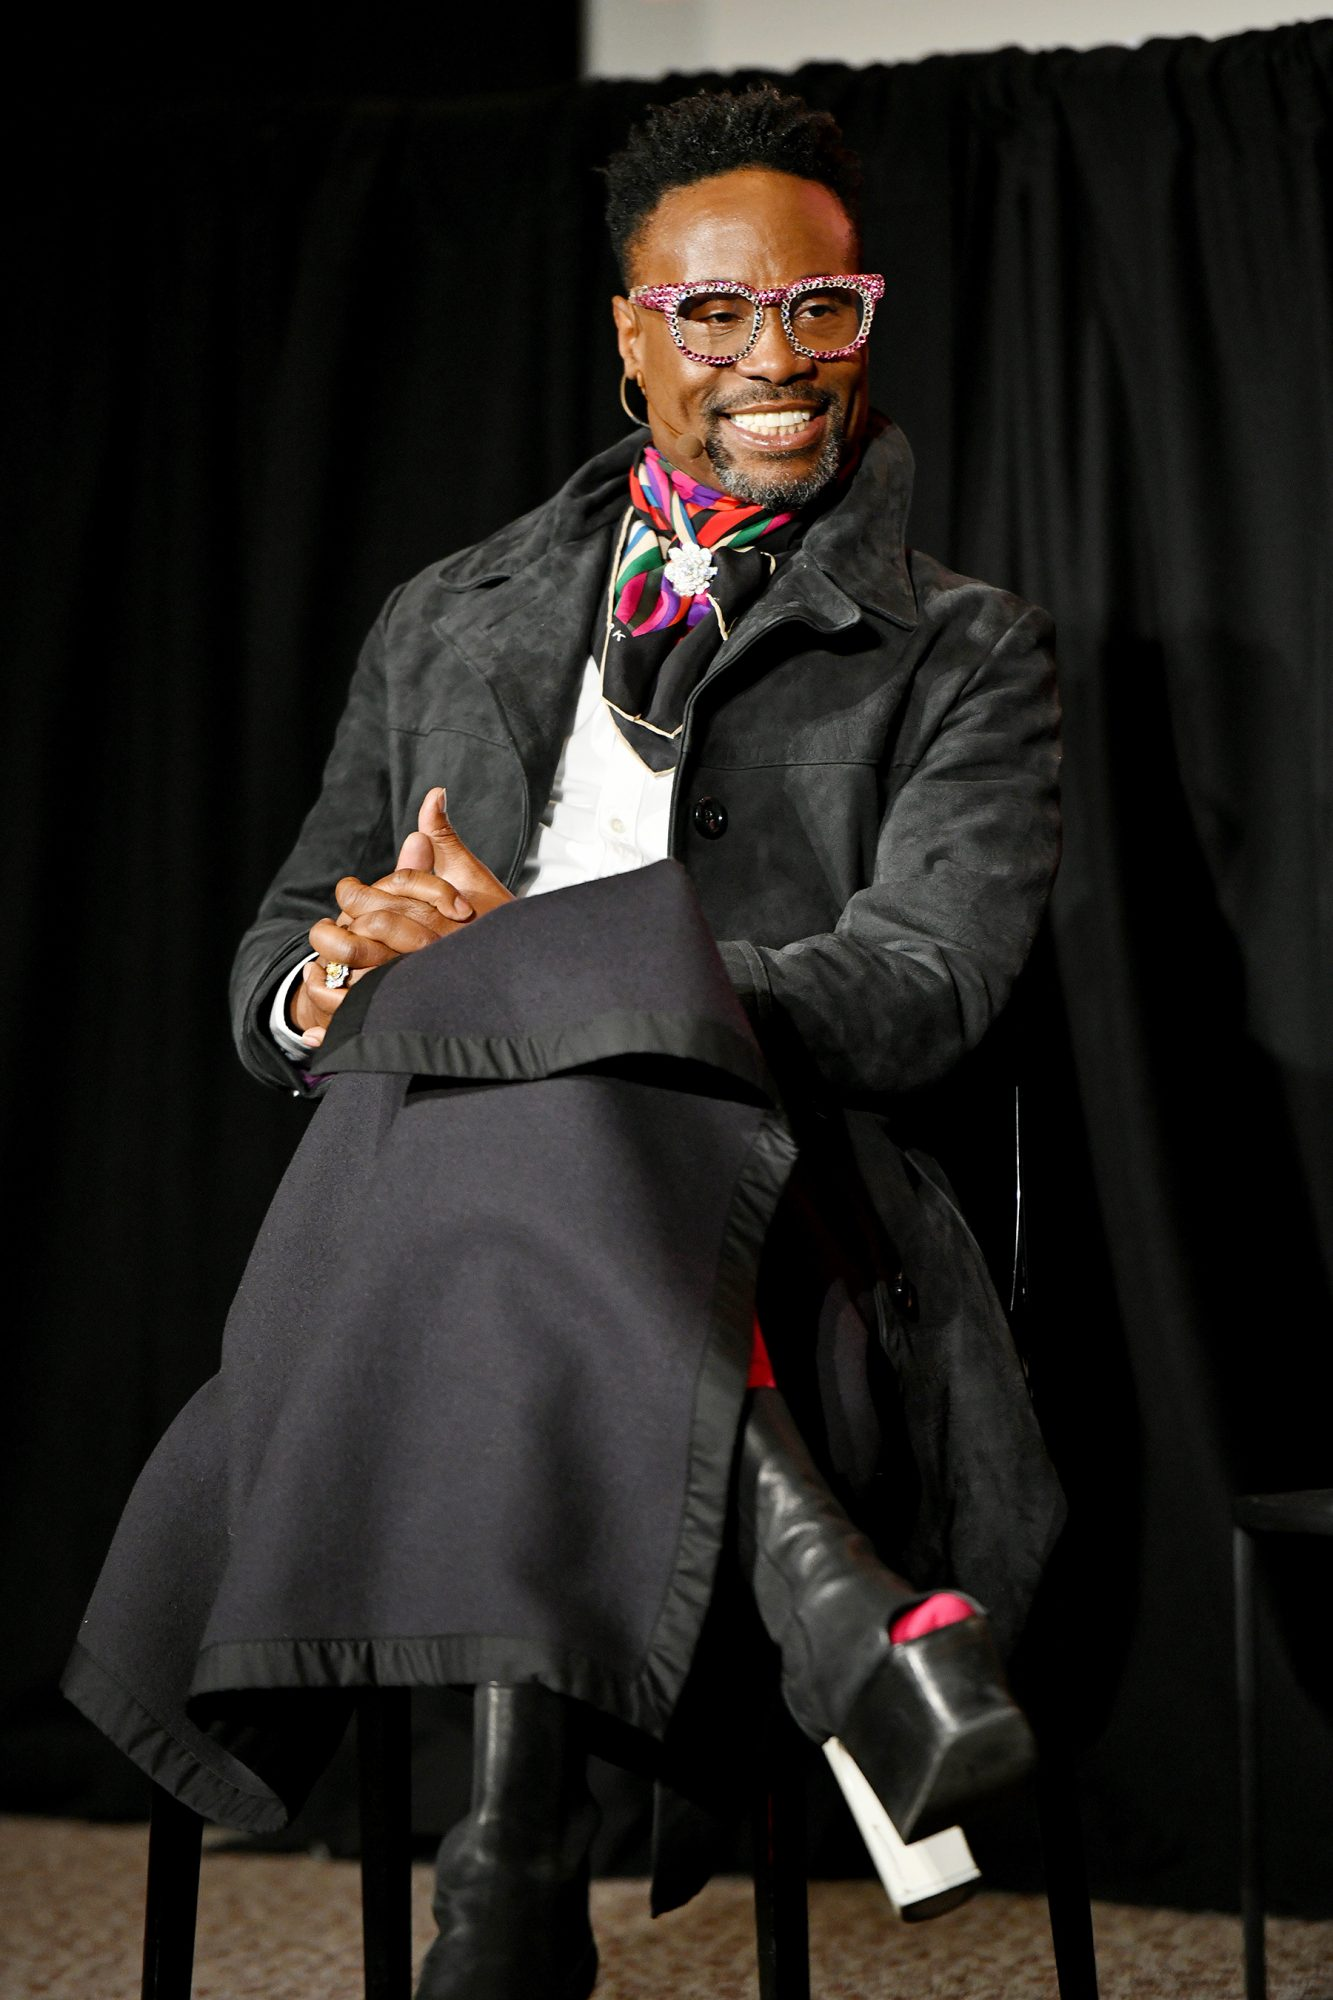 The 2019 New Yorker Festival - Billy Porter Talks With Rachel Syme